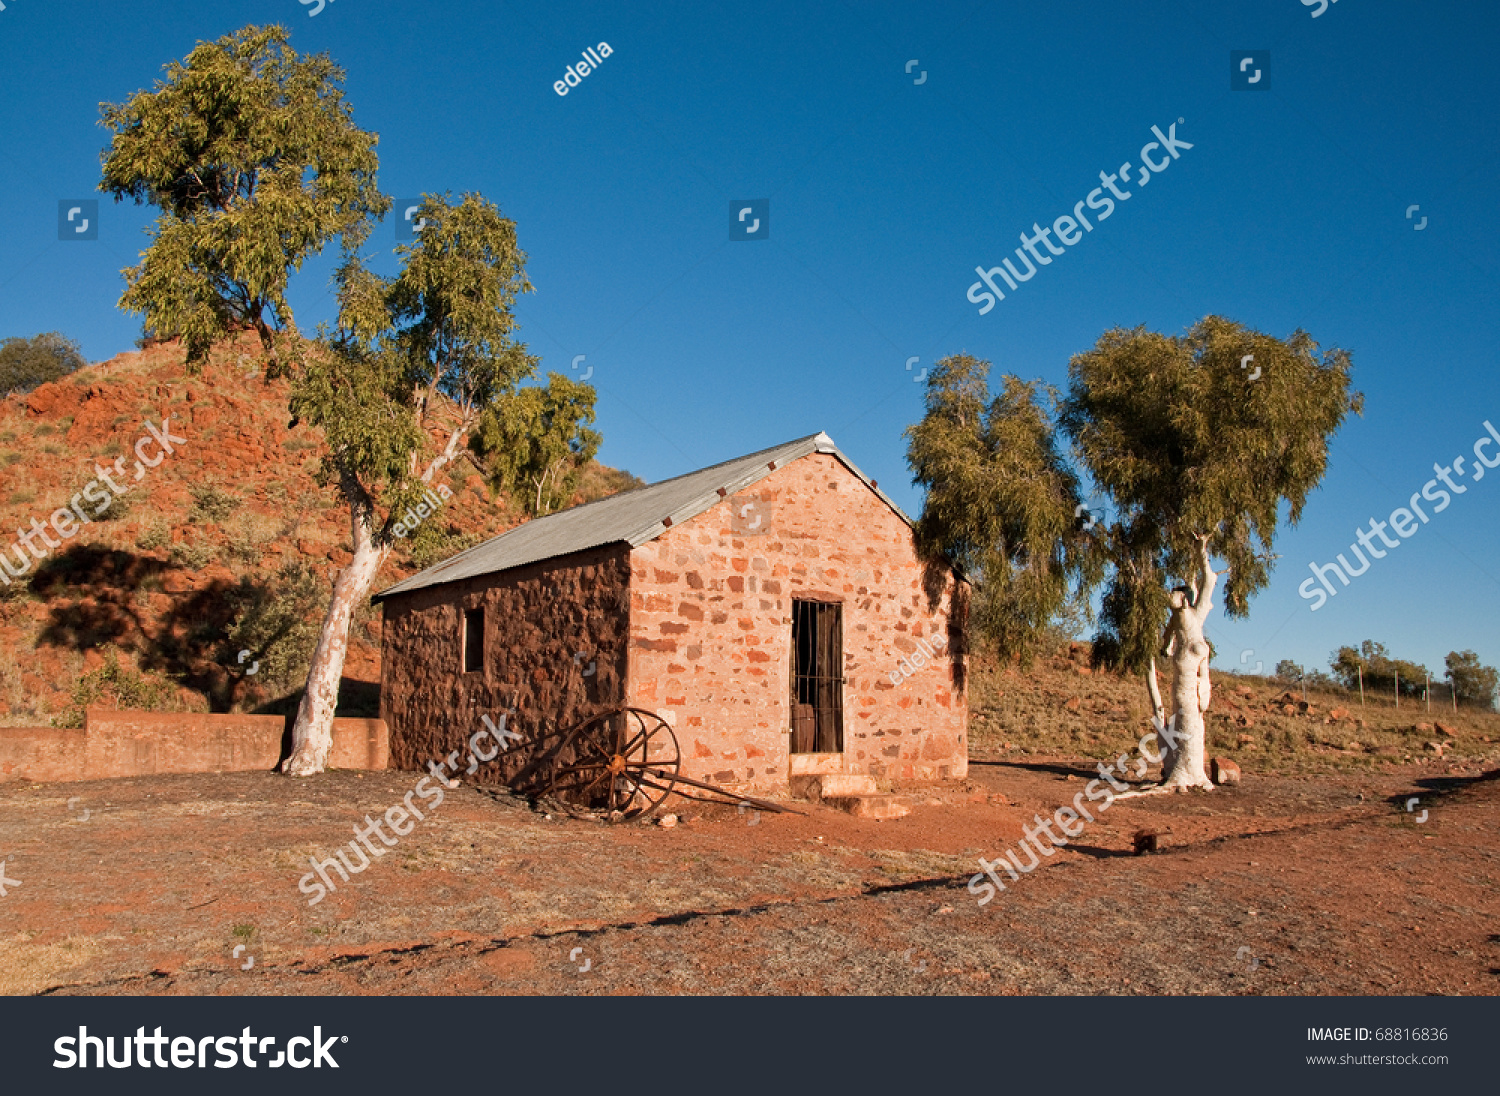 Telegraph Station In The Australian Outback Northern Territory